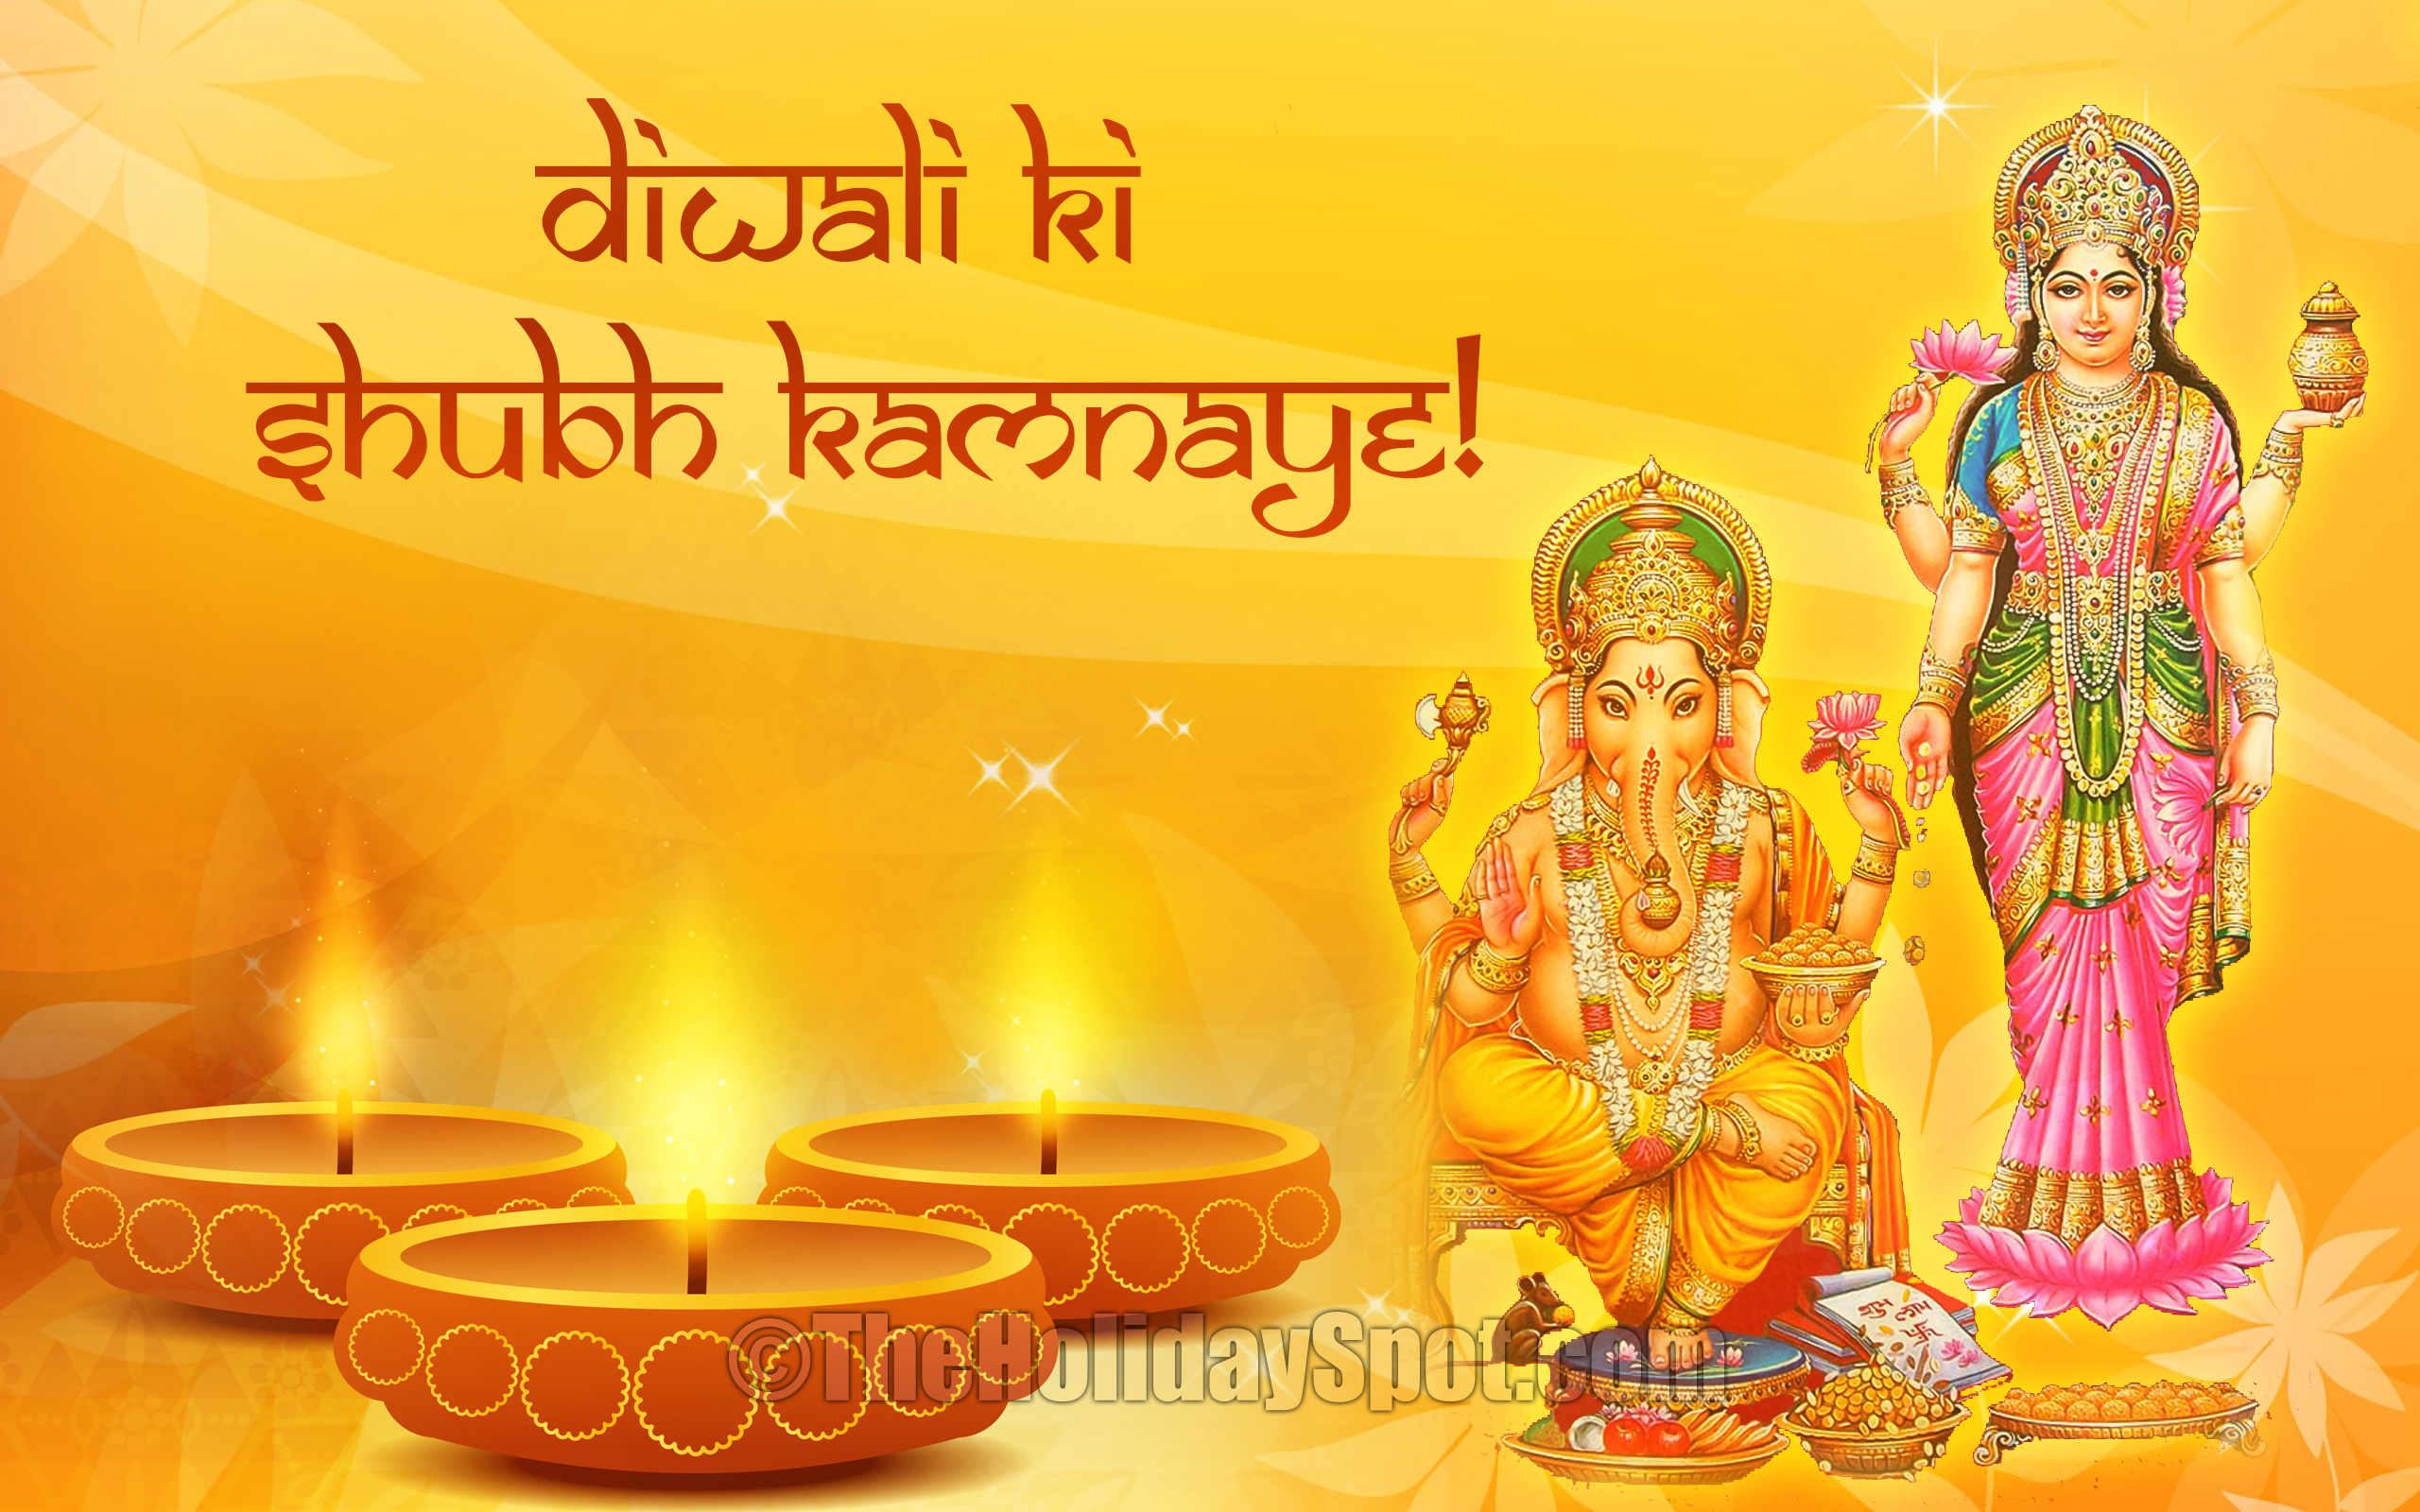 Wallpaper download diwali - Diwali Ki Shubh Kamnaye From Goddes Lakshmi And Lord Ganesha